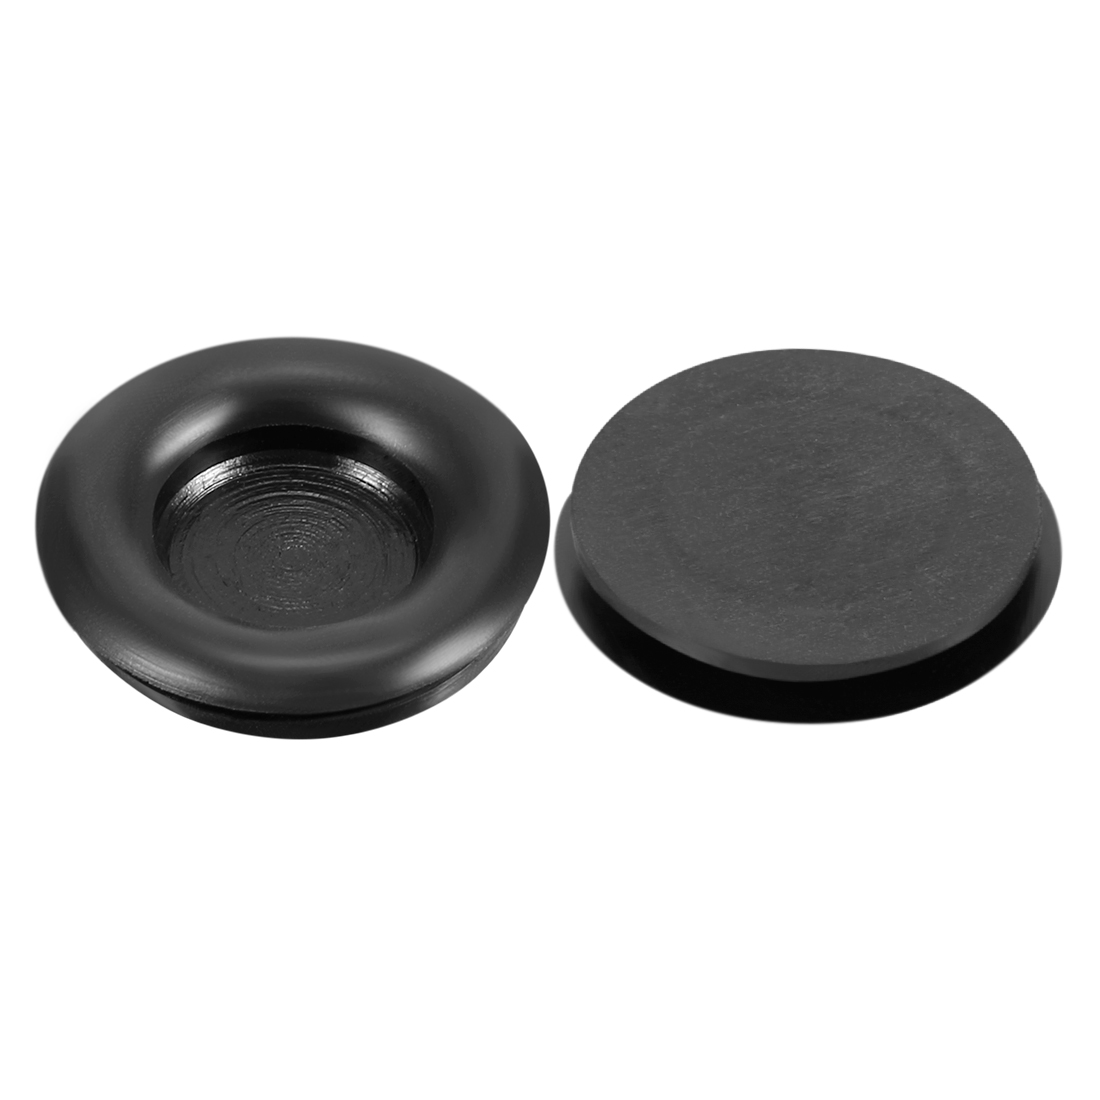 Wire Protector Oil Resistant Rubber Grommets 18mm Mounting Dia 10Pcs Black